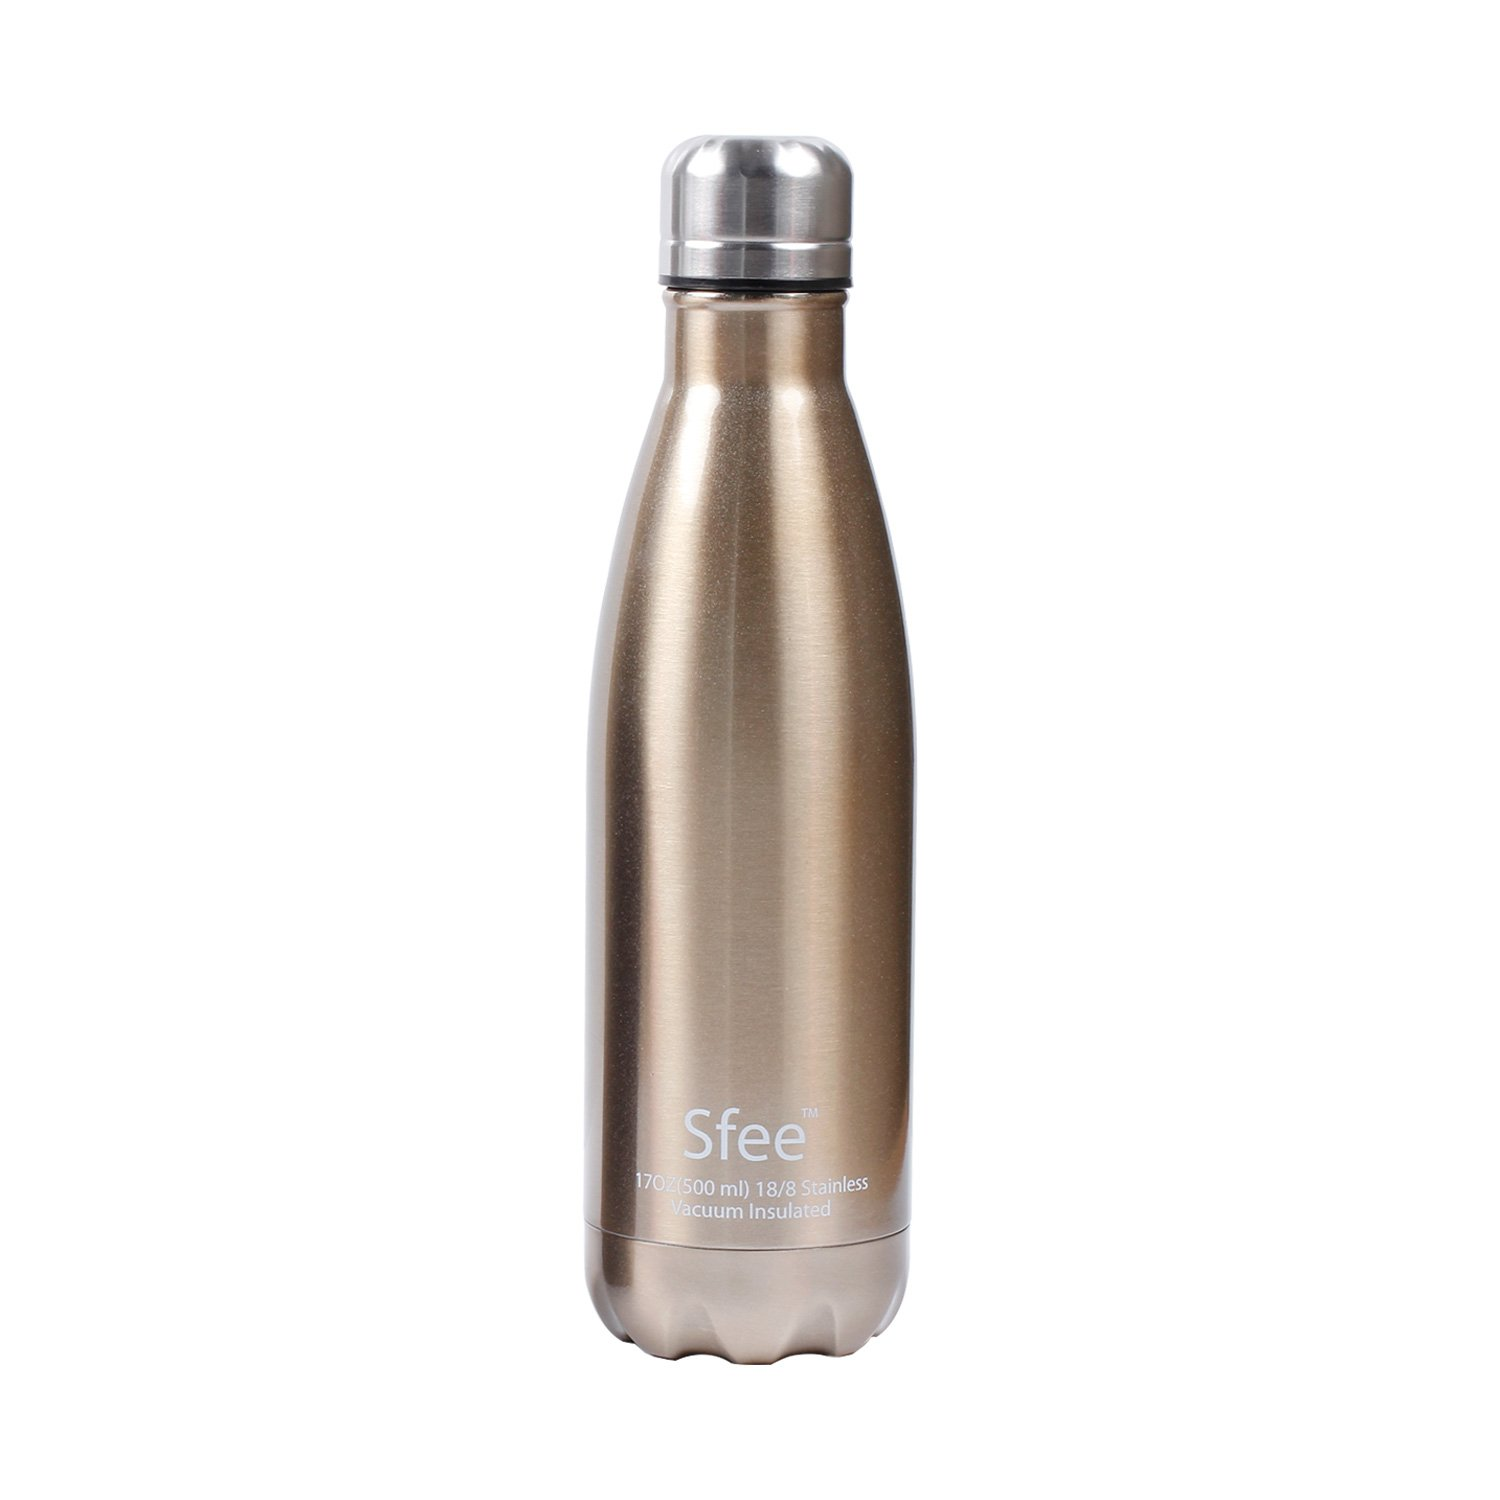 Perfect Metal,Keep Hot Cool Leak Proof Camping Tennis Runner Bike Sports Water Bottles Sfee 17oz Double Wall Vacuum Insulated Stainless Steel Water Bottle Cup Protective Carry Bag Dark Blue Protective Carry Bag Keep Hot/&Cool Sports Water Bottles